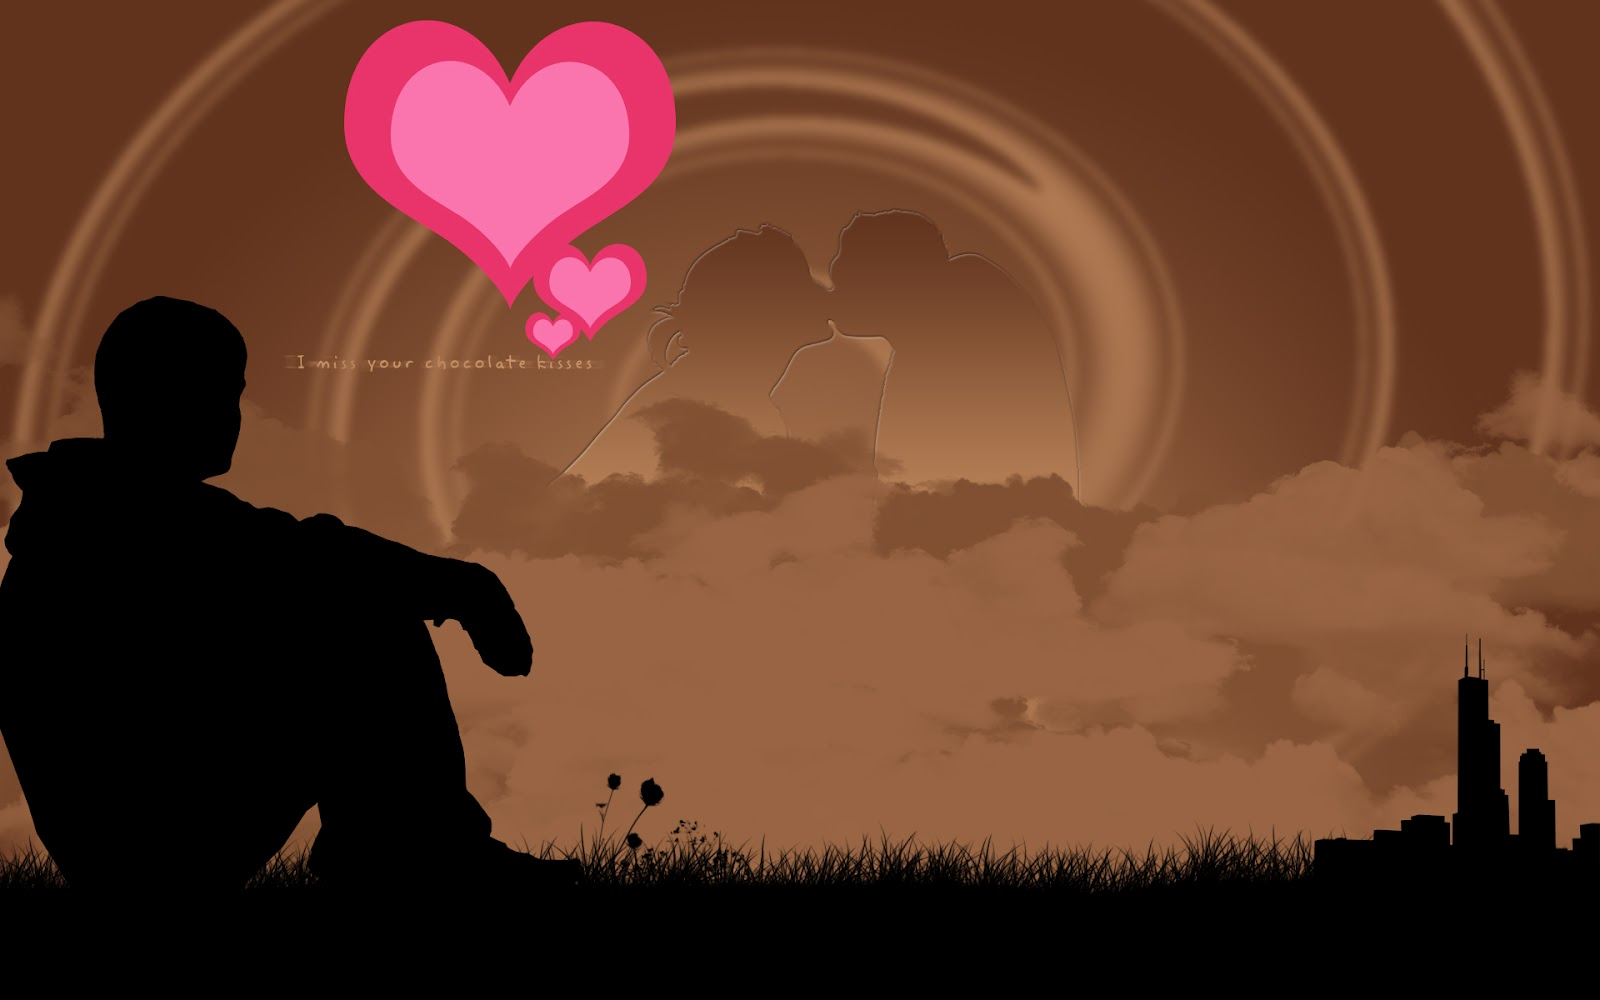 http://1.bp.blogspot.com/-wcNmoU9H278/T6LhT-NCYpI/AAAAAAAAACc/NAPIXvoUB1A/s1600/I+Miss+You+Love+Wallpapers.jpg